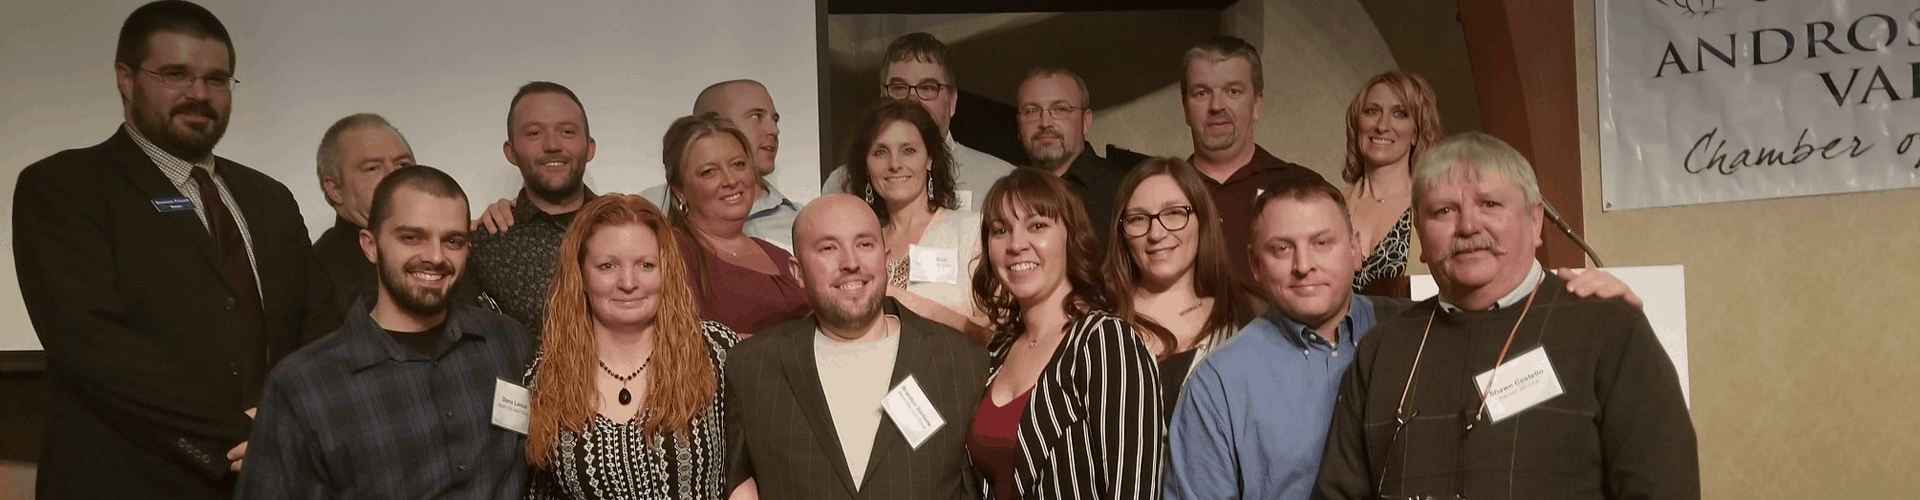 Androscoggin Valley Chamber of Commerce Annual Dinner + Meeting